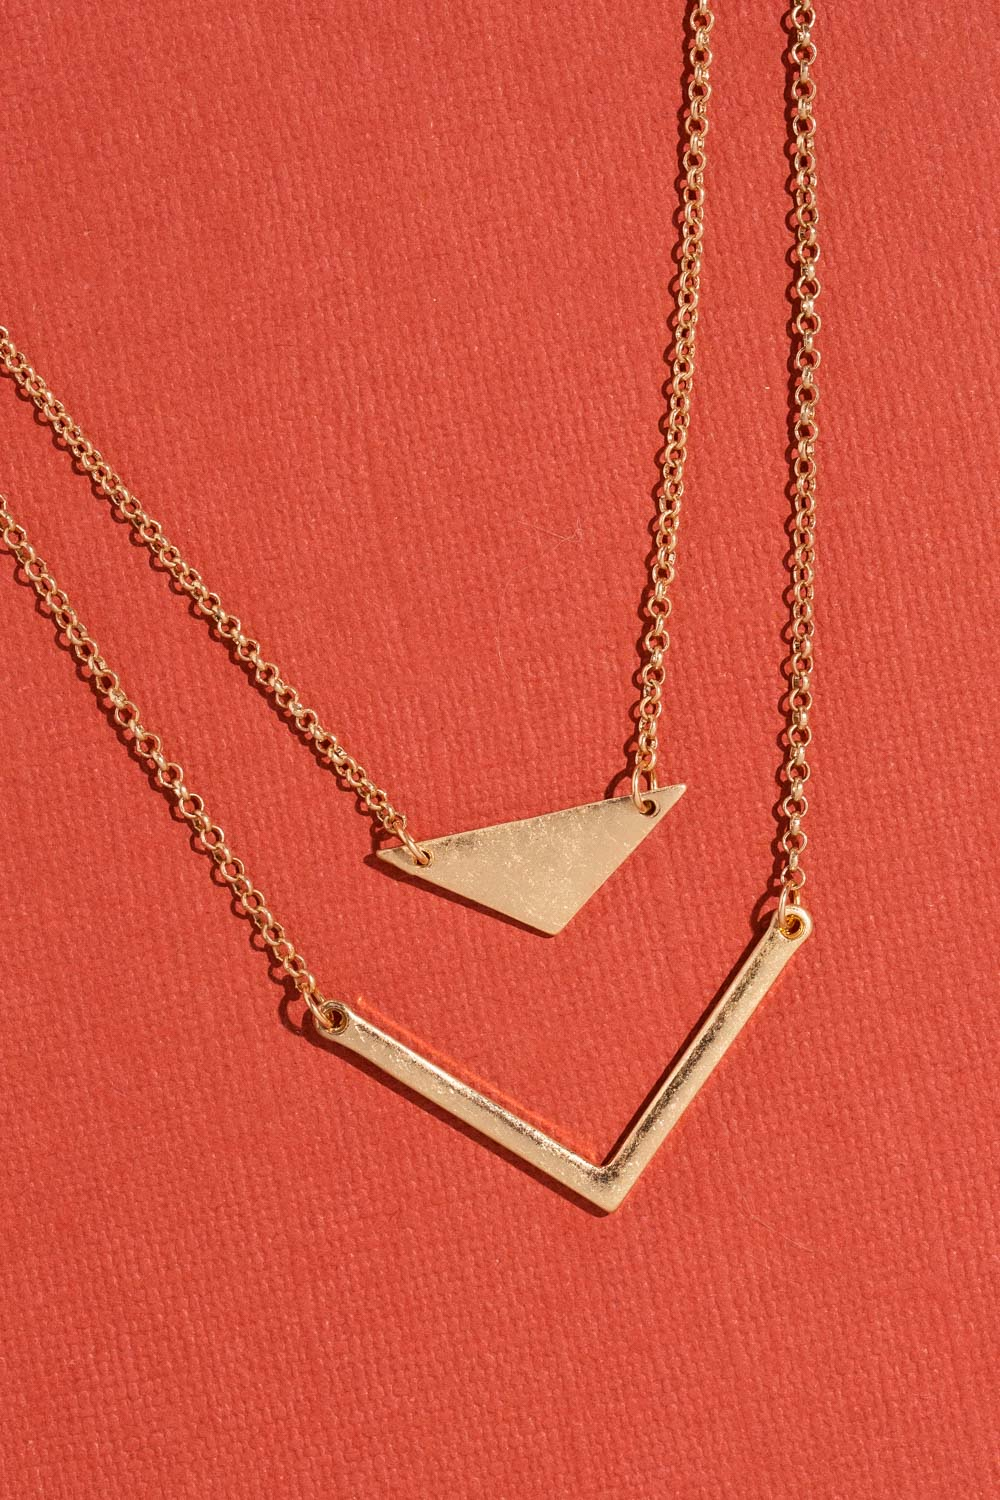 Type 3 Navigator Necklace